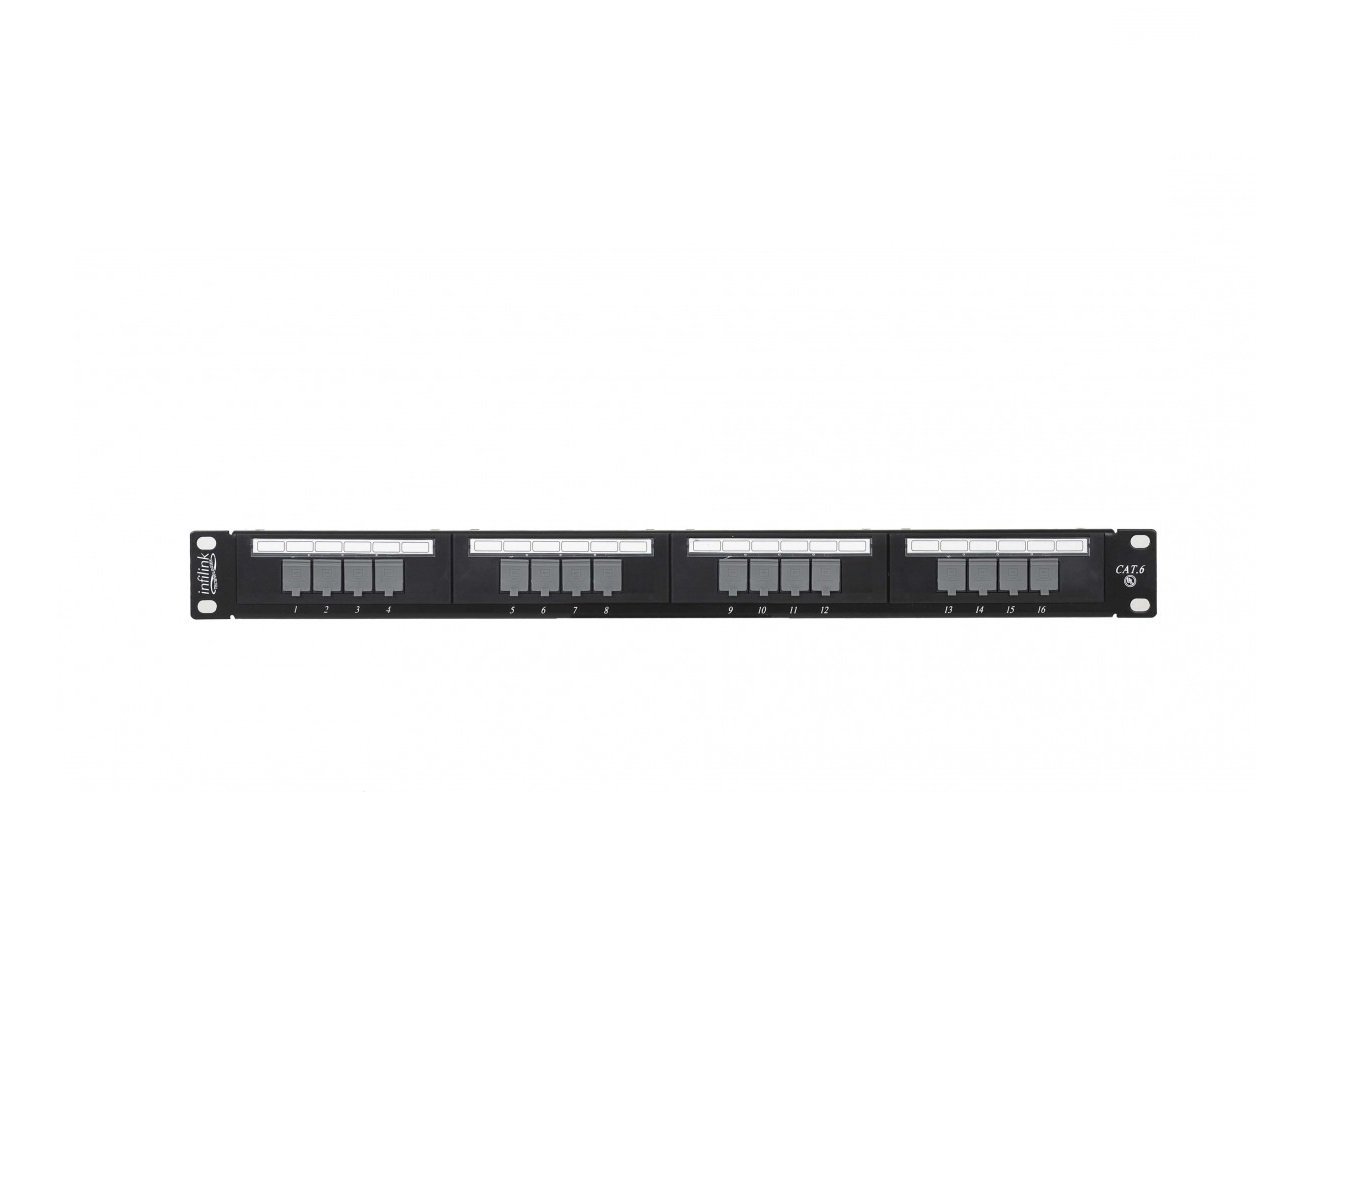 INFILINK_IP-PP616_Patch-Panels